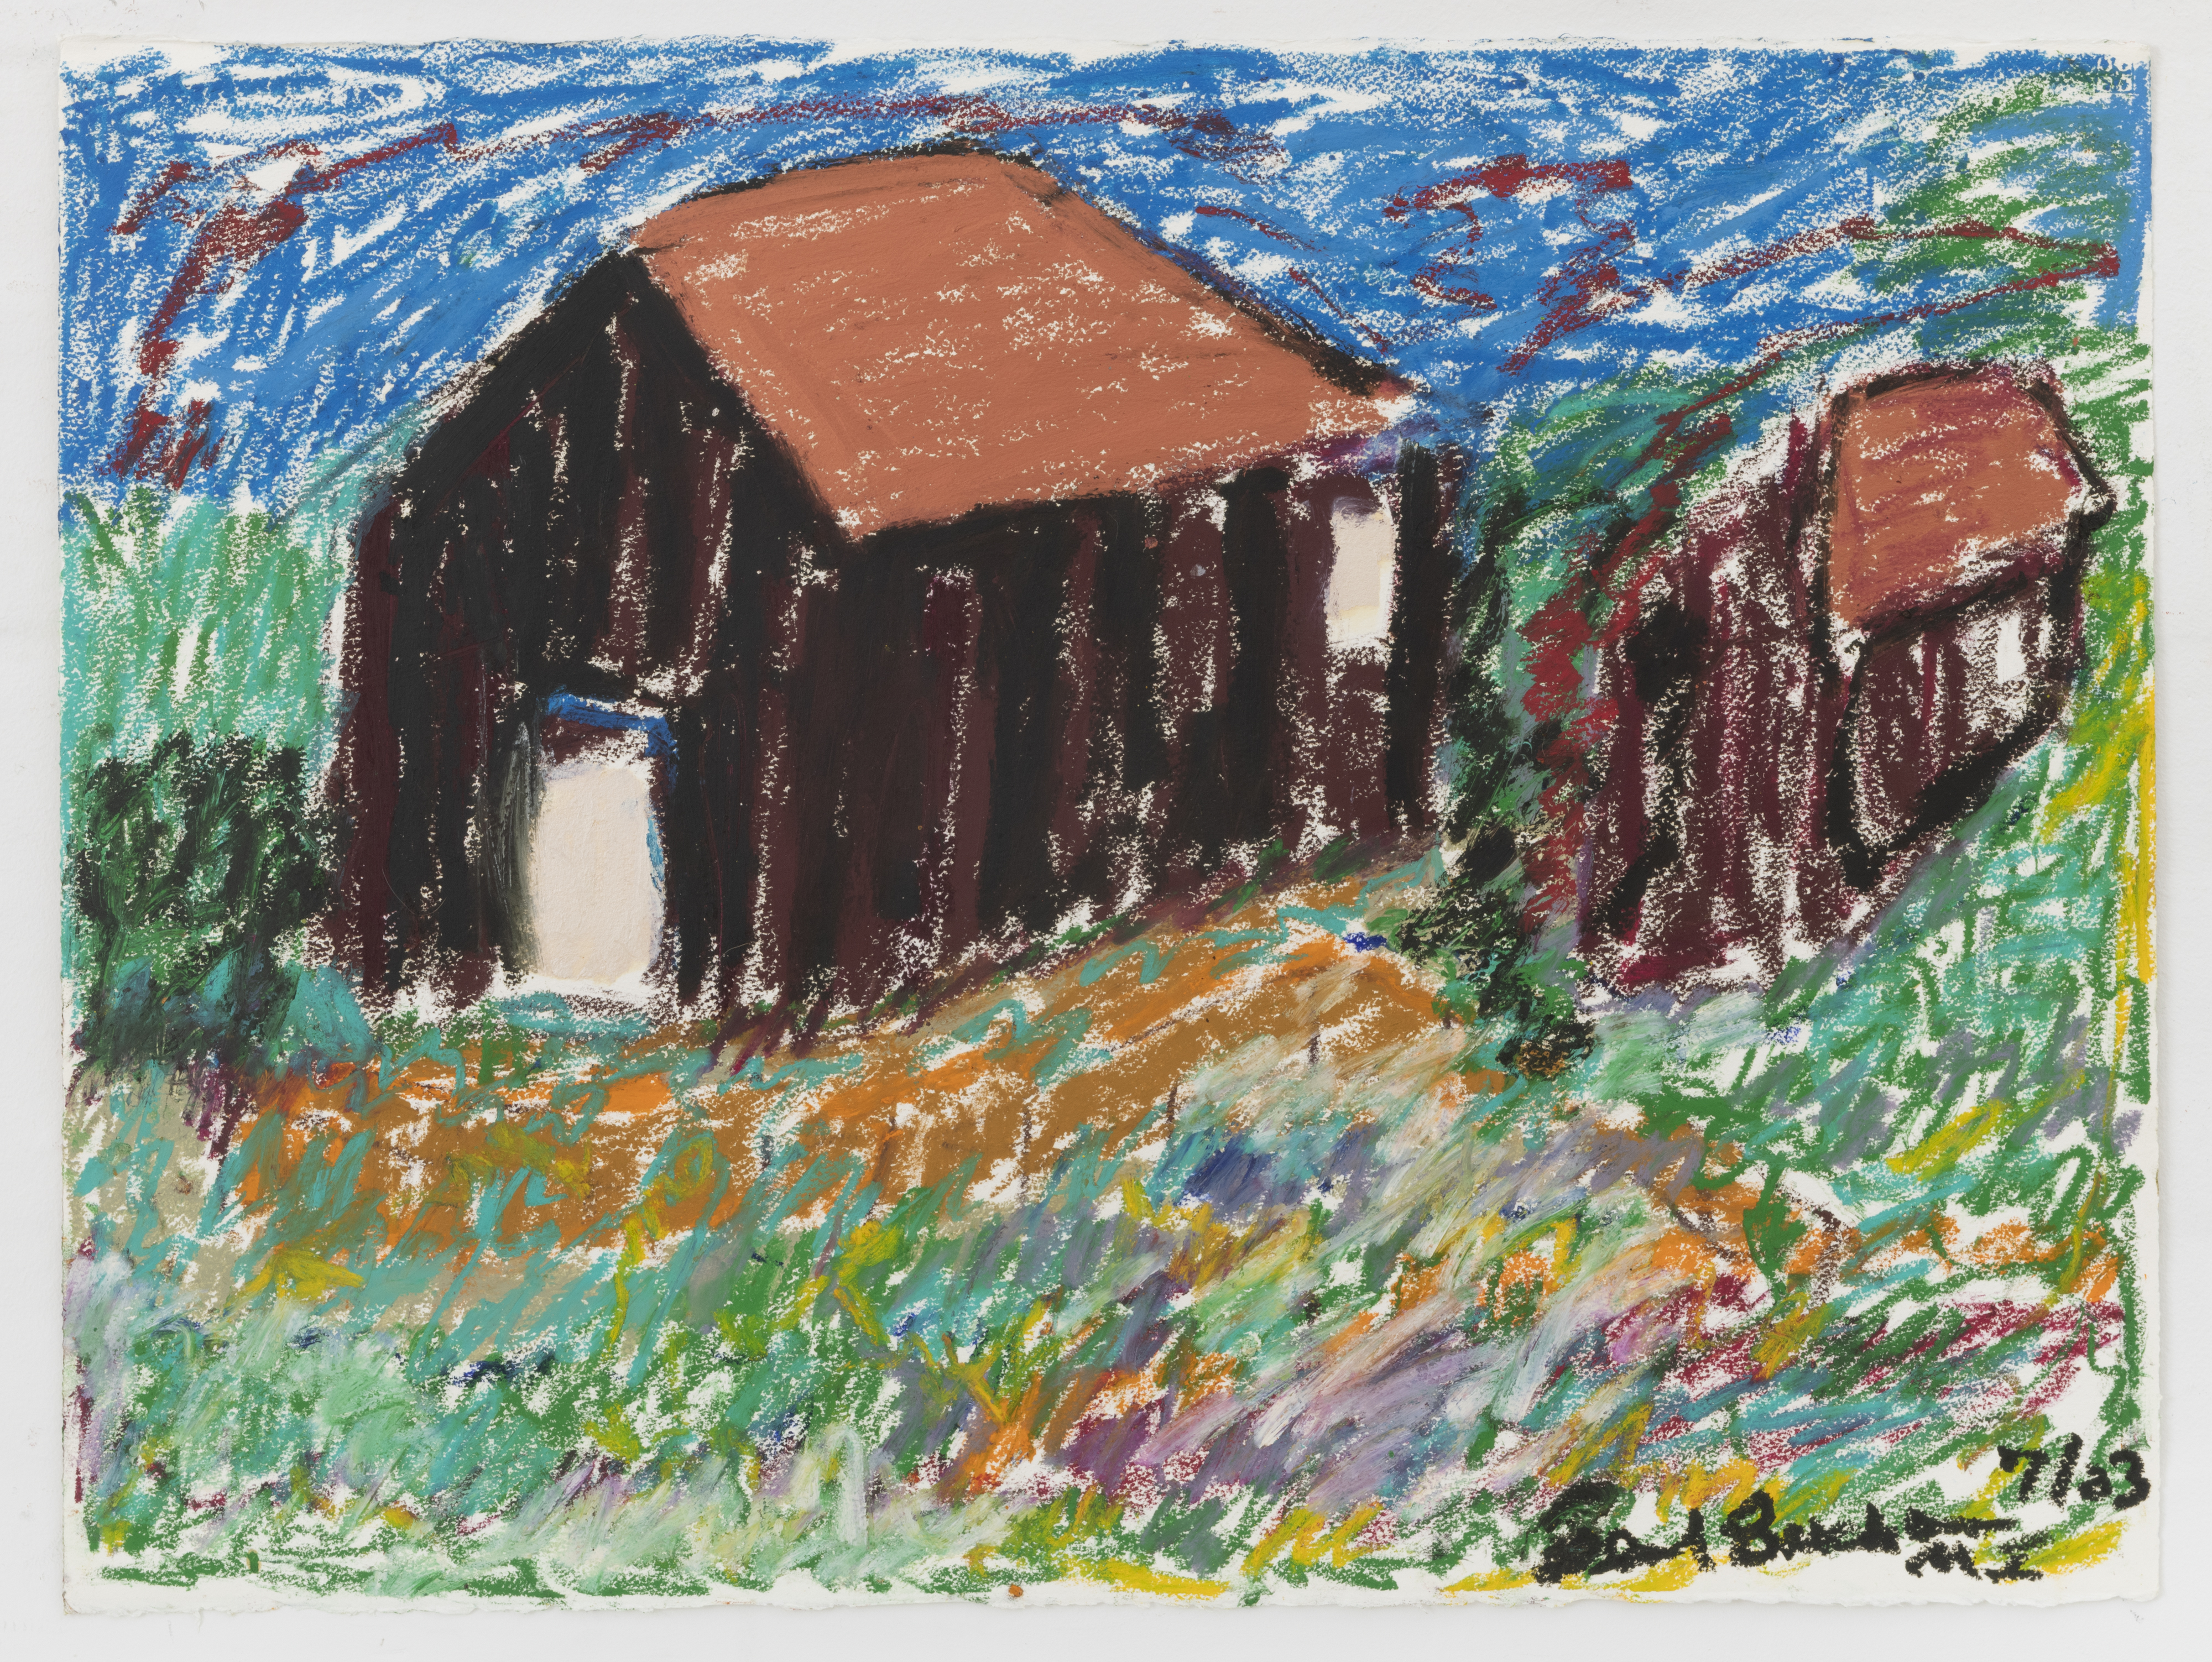 Beverly Buchanan, Black Barns – Kentucky, 2003. Oil pastel on paper, 22 x 30 inches. Image courtesy Andrew Edlin gallery, New York.